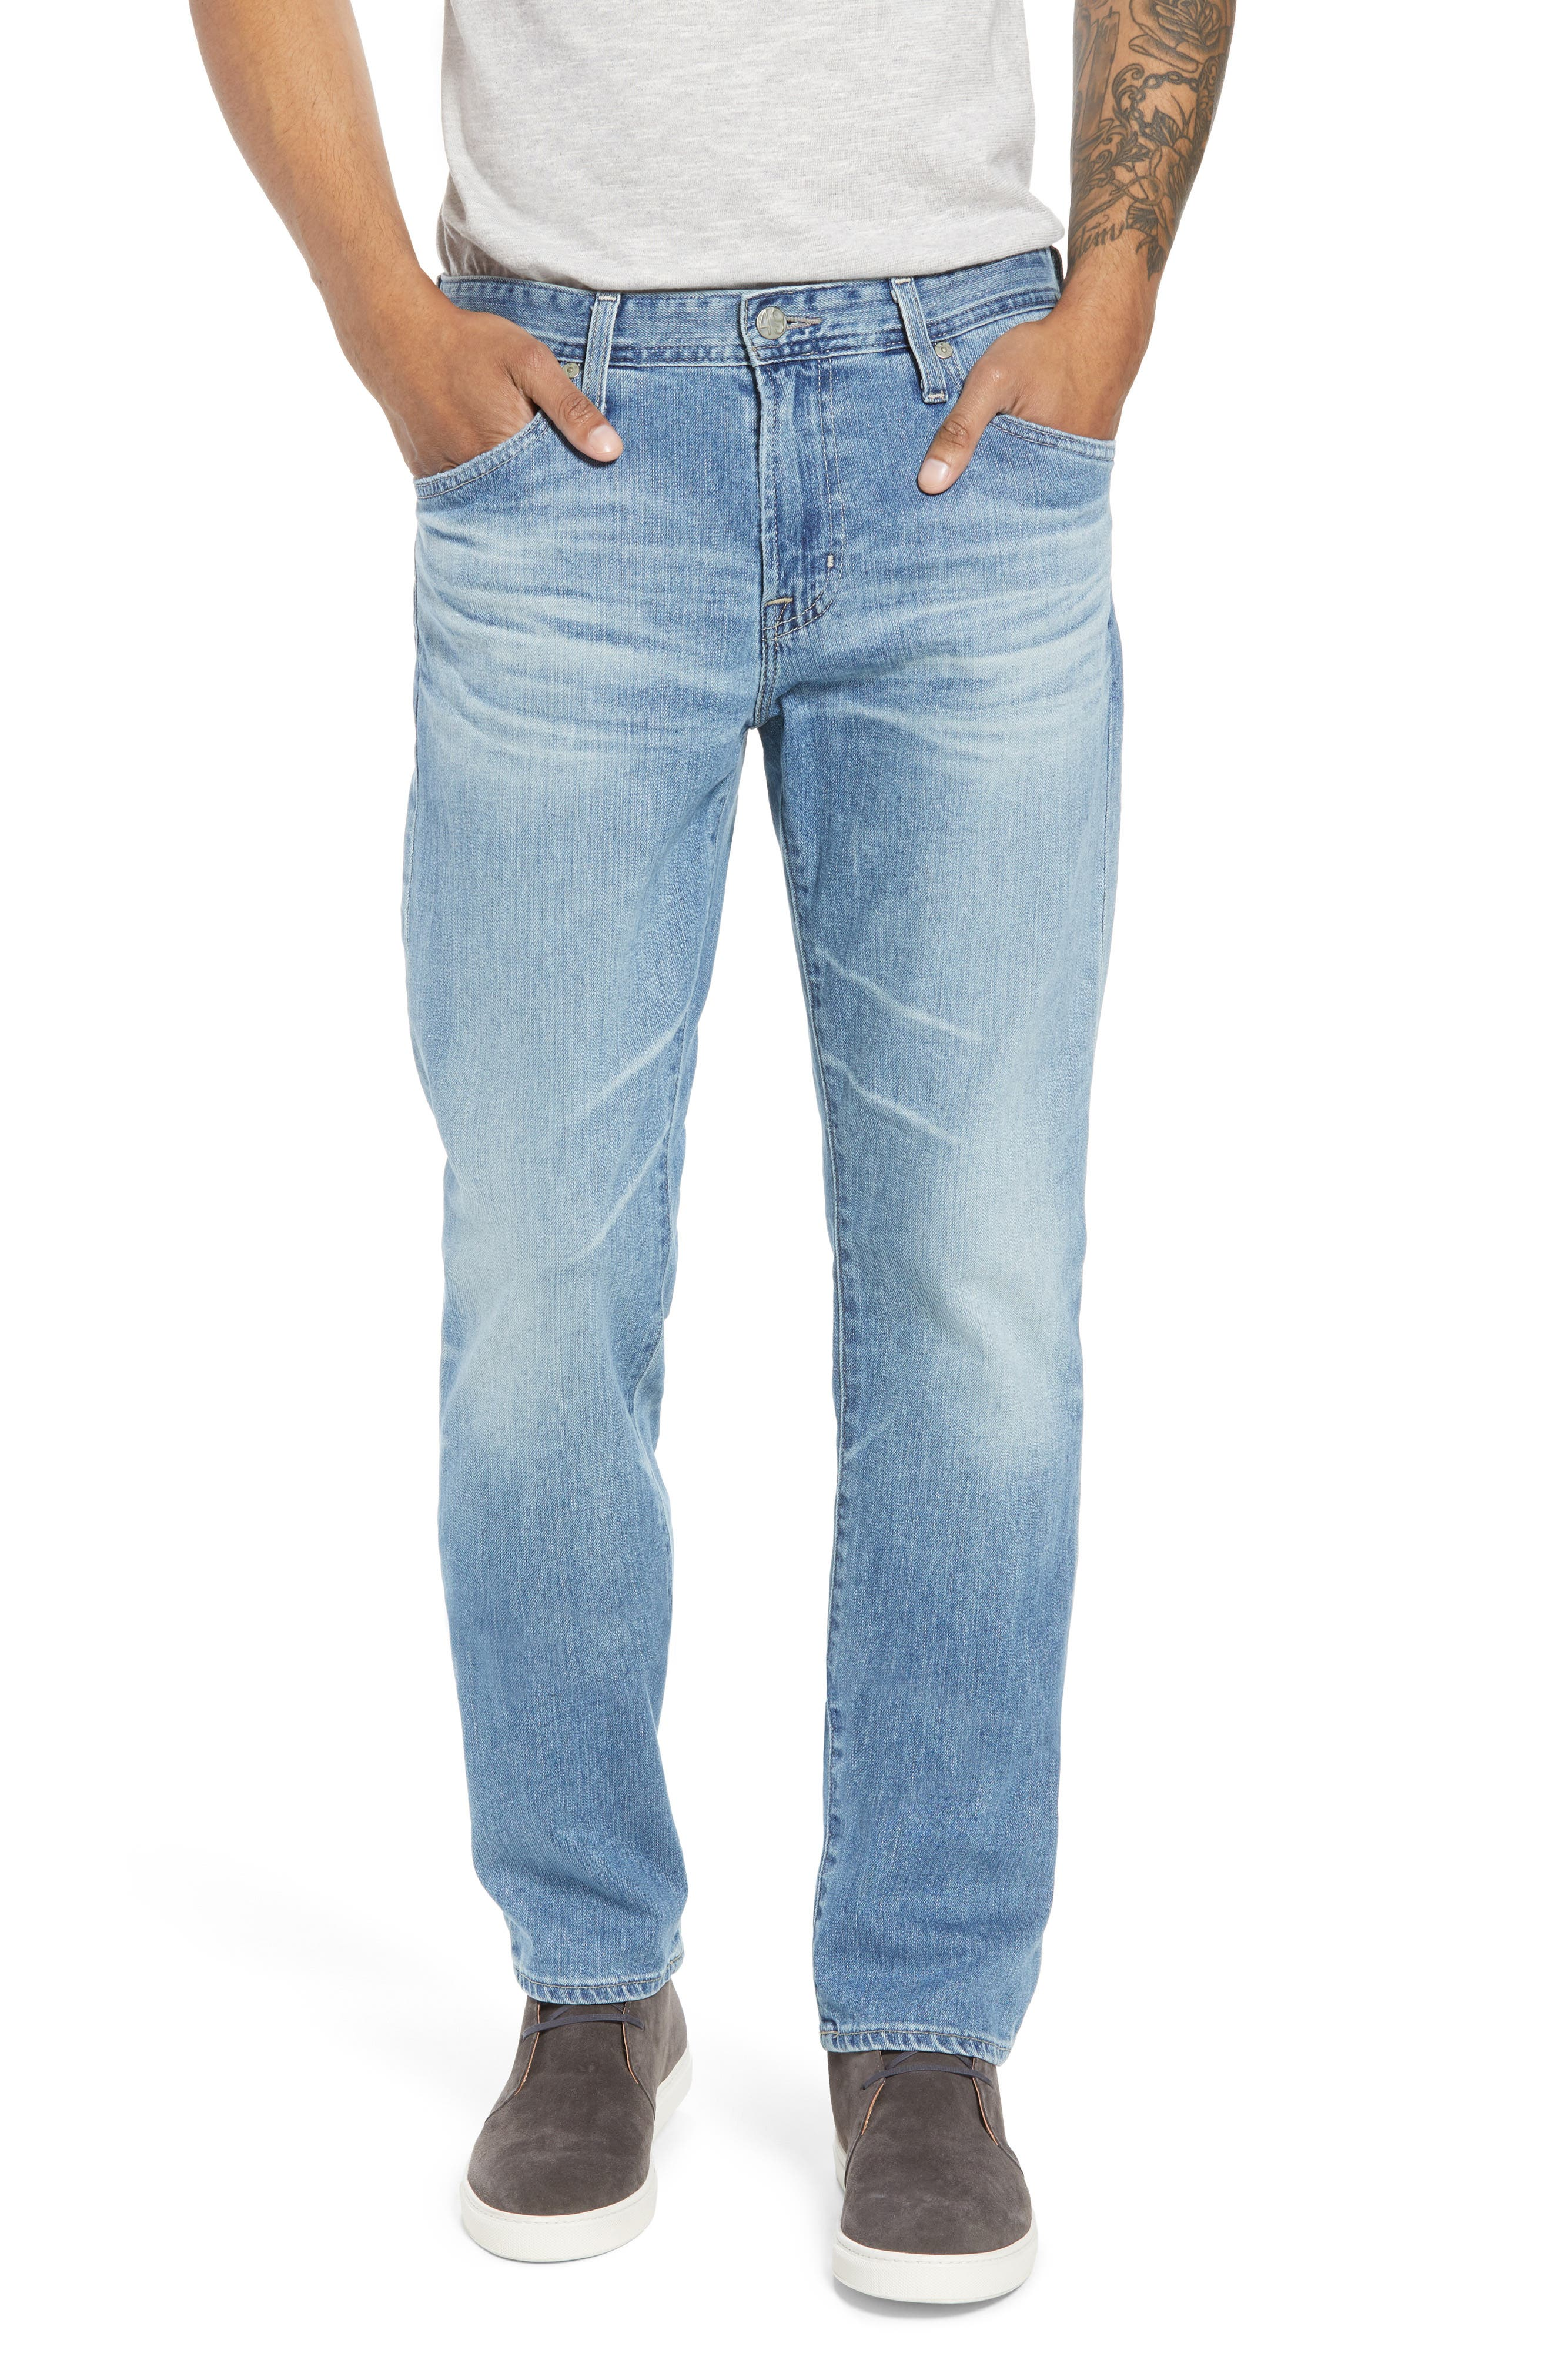 Everett Slim Straight Fit Jeans,                         Main,                         color, 18 Years Oceano